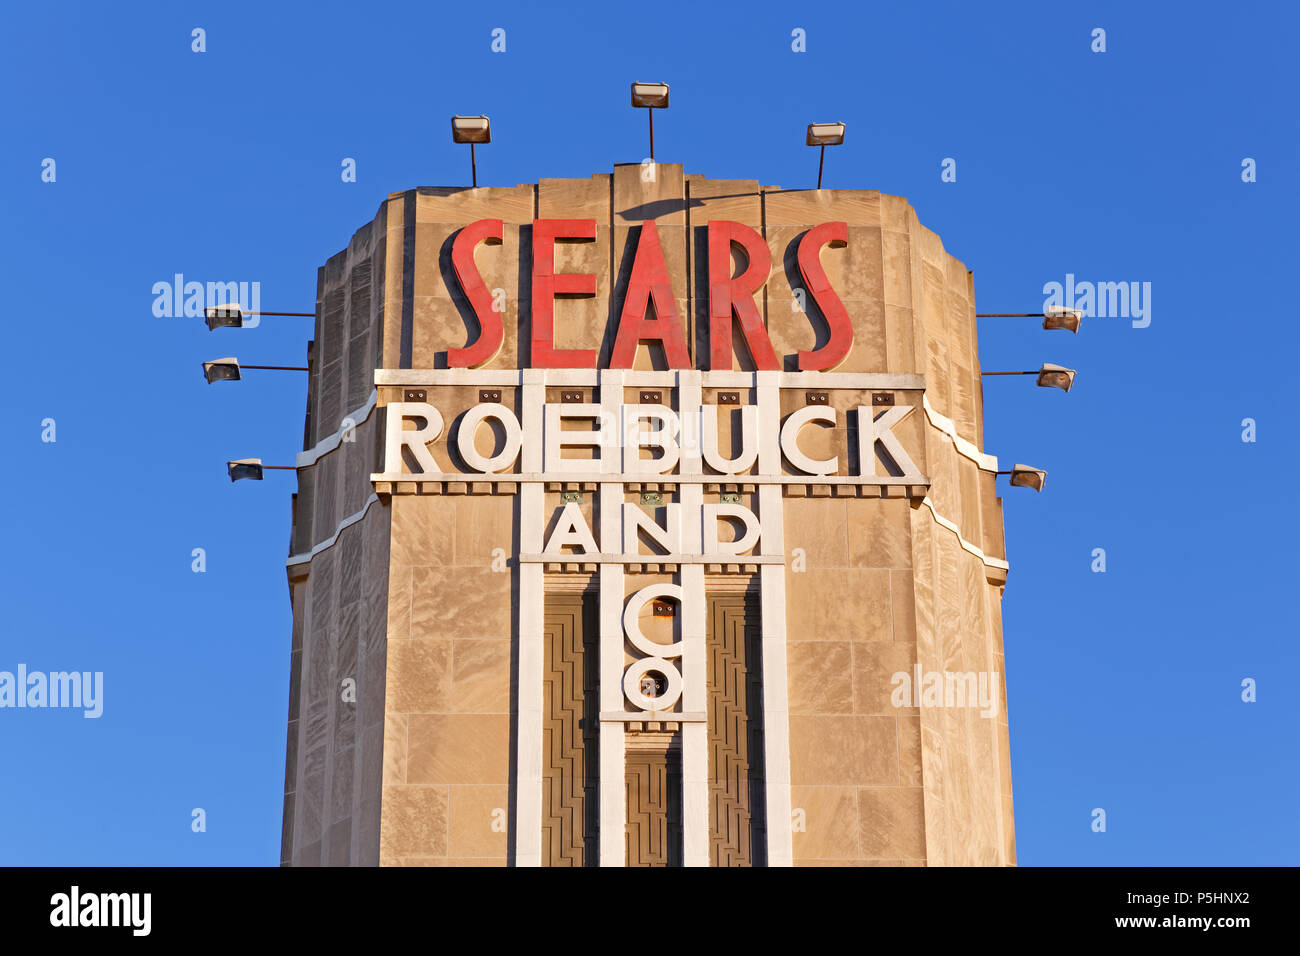 An old Sears Roebuck & Company store sign on a art deco facade - Stock Image